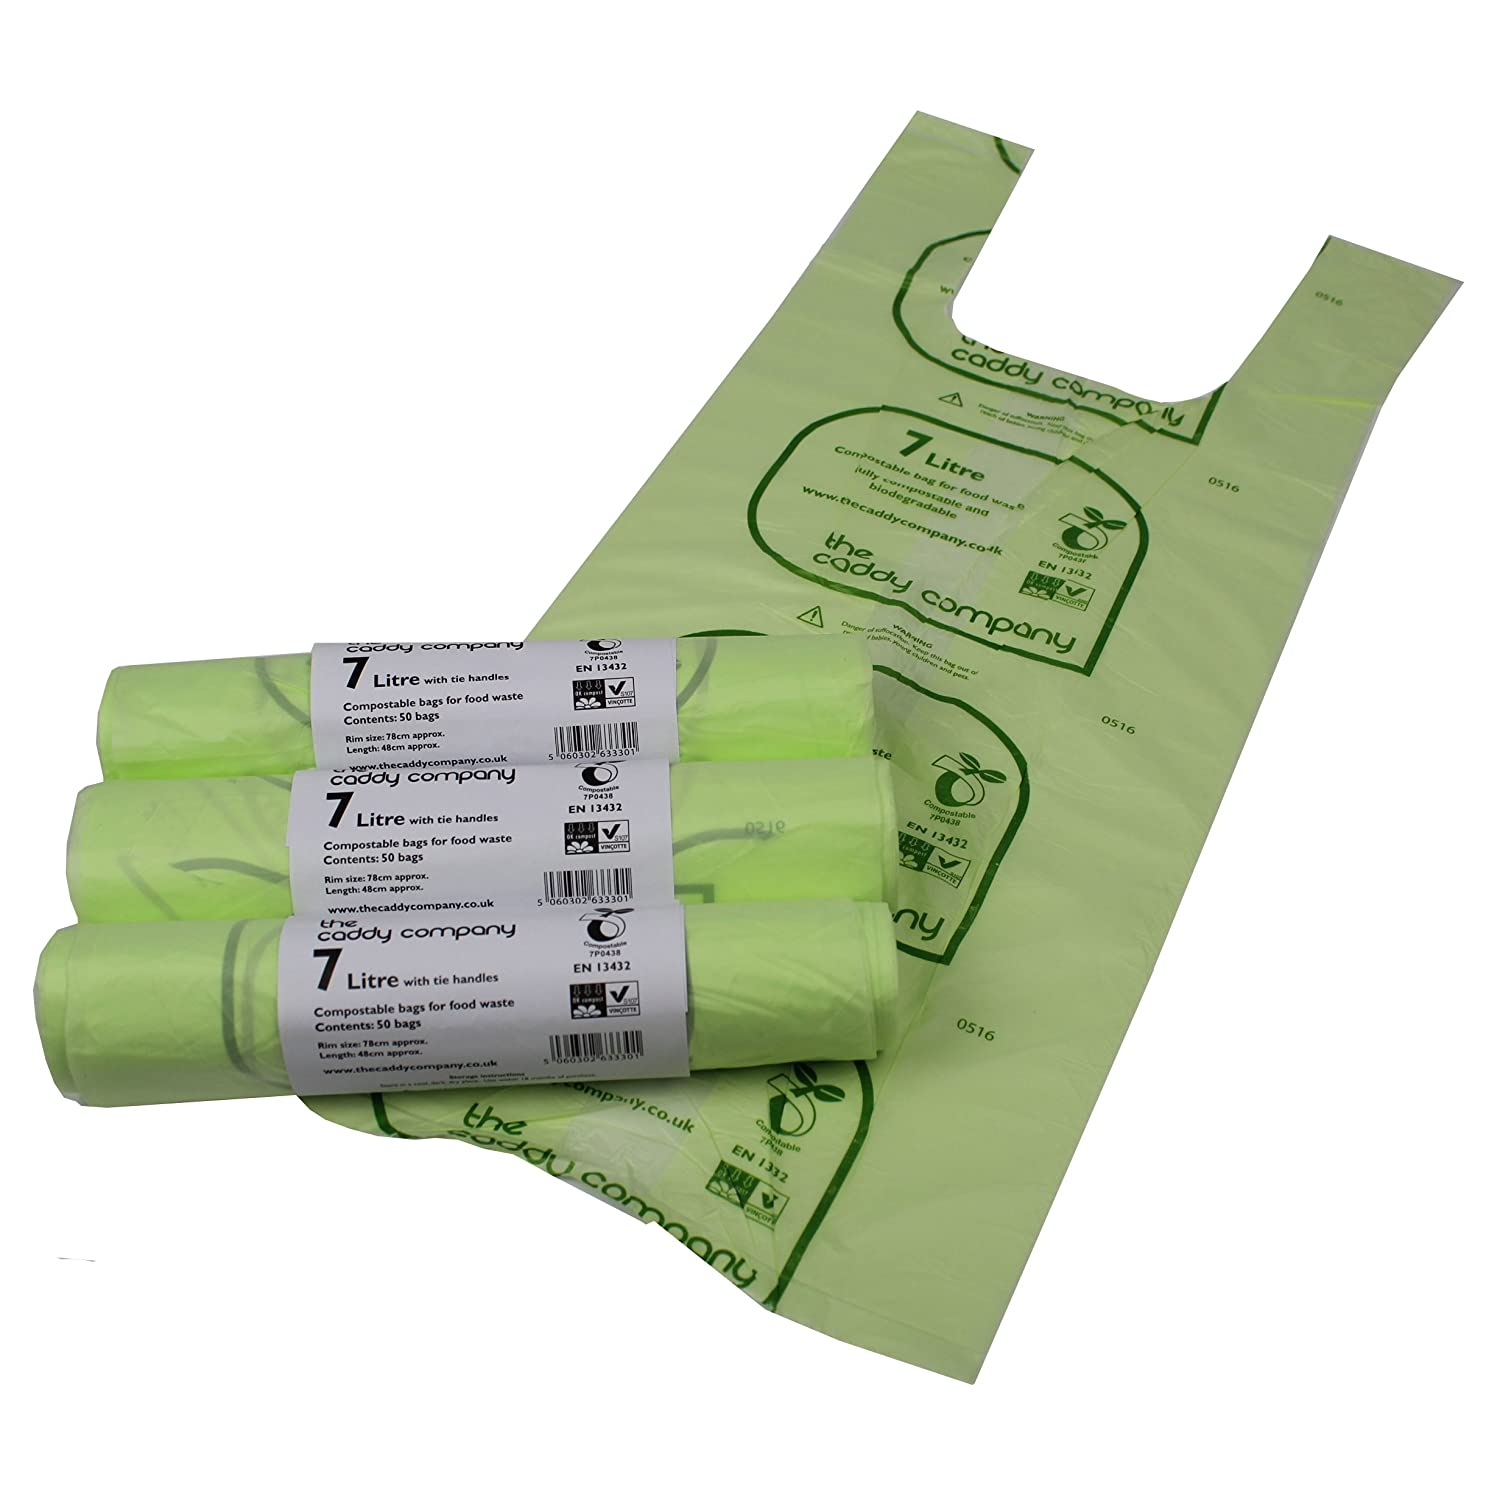 7L x 150 Tie Handle Compostable Kitchen Caddy Liners - Food Waste Bin Liners - EN 13432 - 7 litre Bags All-Green